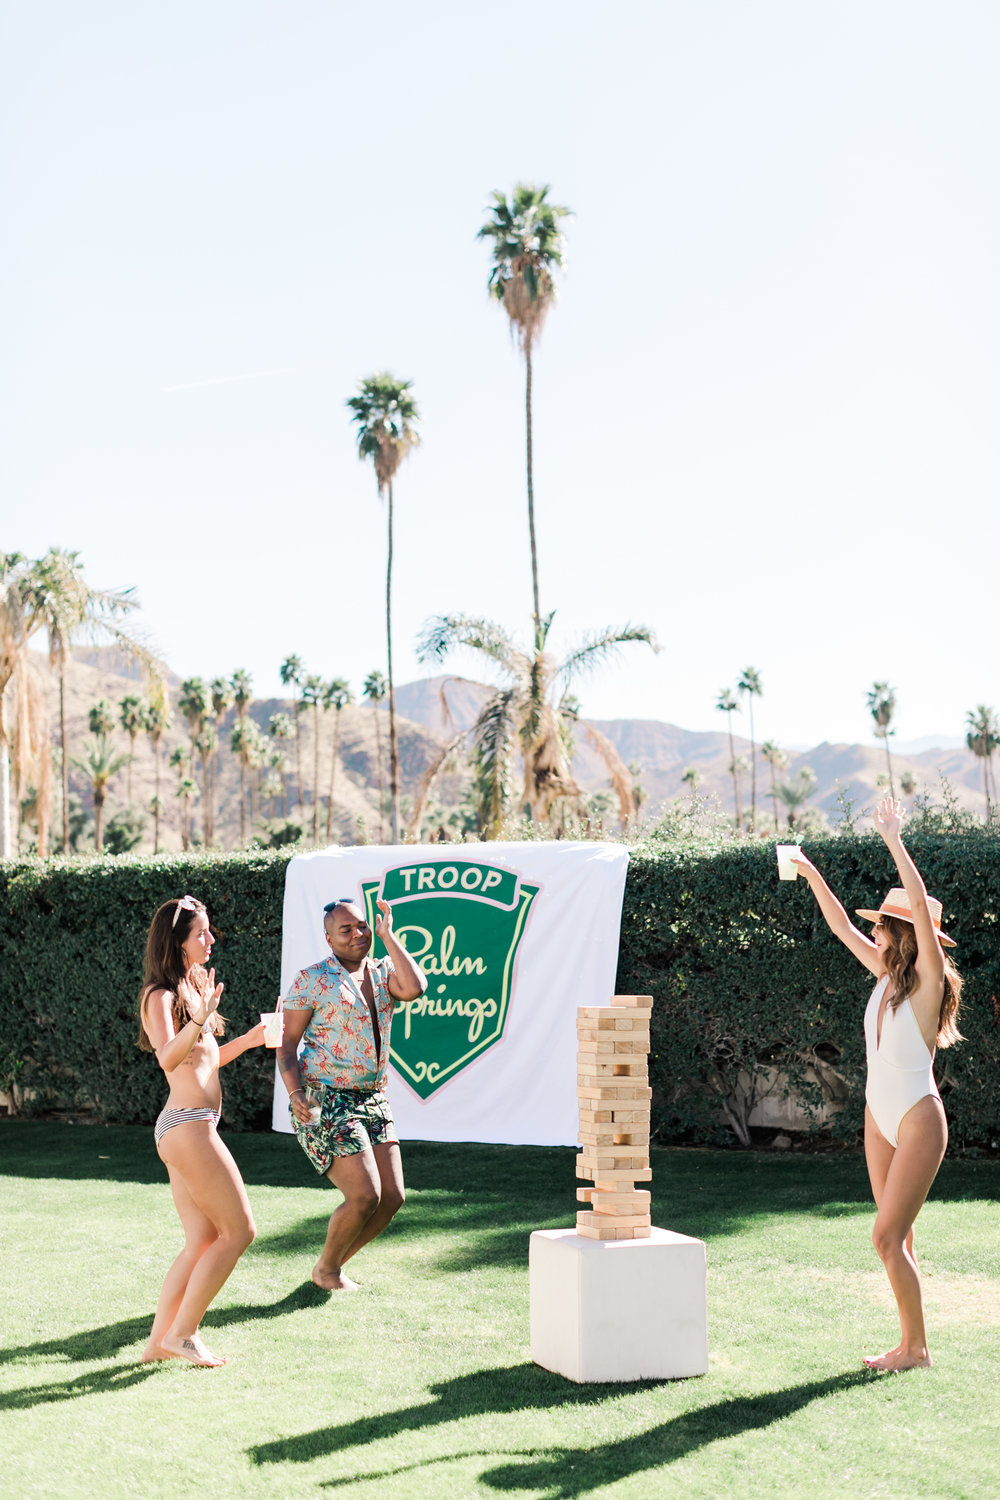 Joymode Giant Jenga Game + Society 6 Tapestry - Bachelorette Party